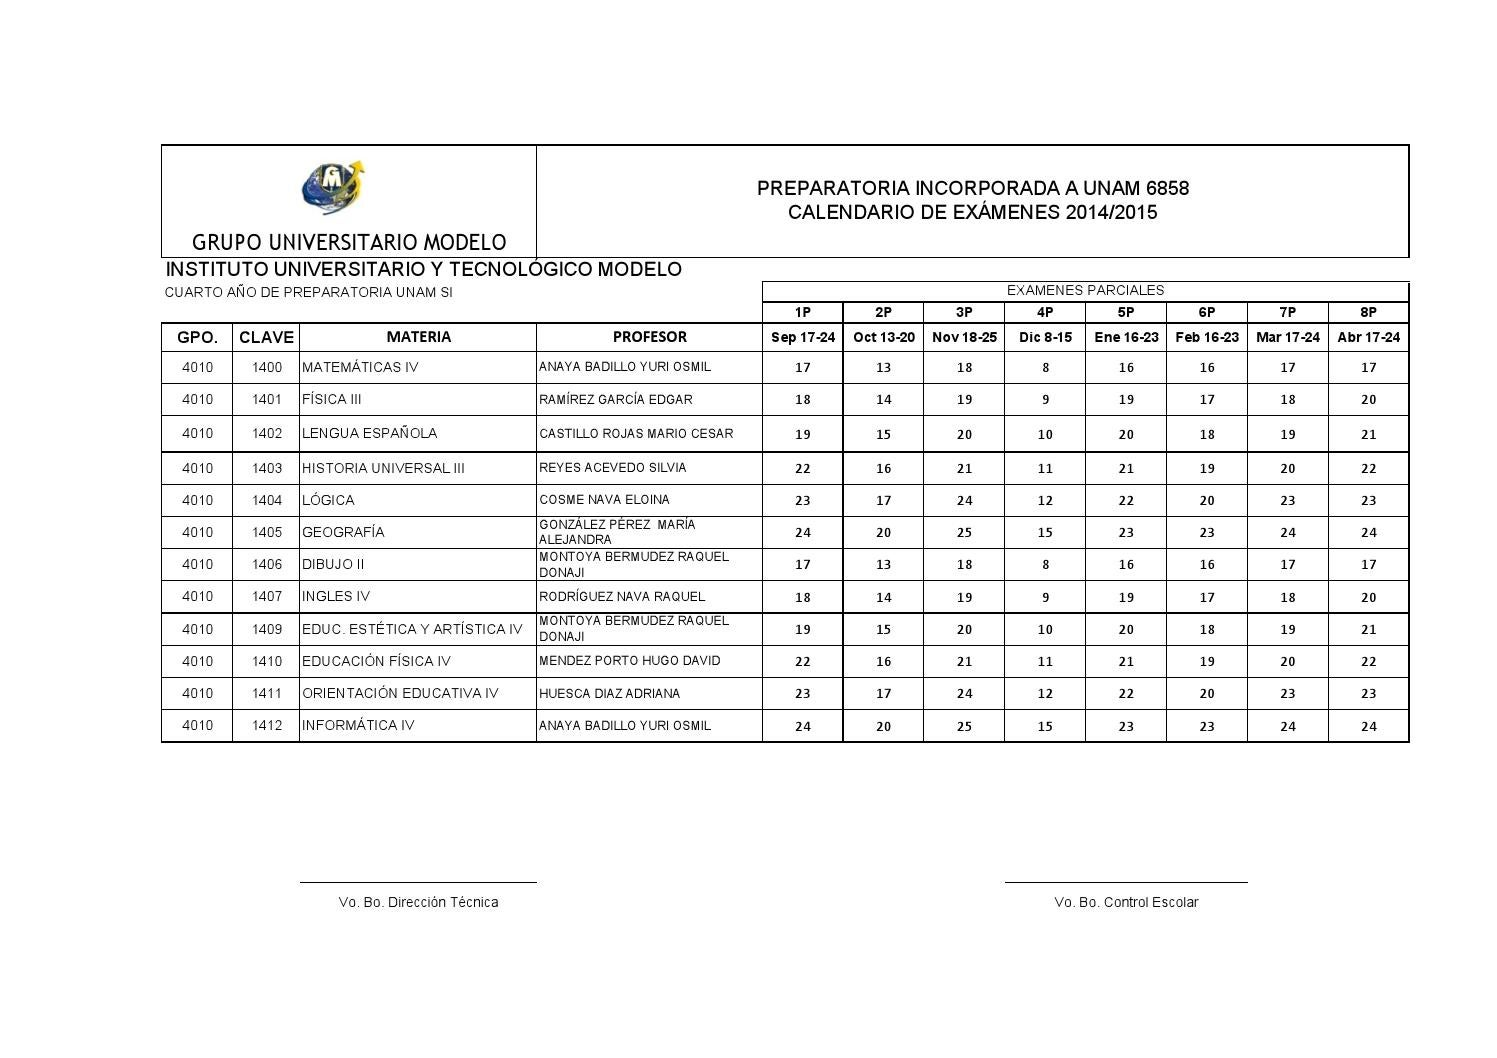 Calendario examenes preparatoria 2014 2015 by MIGUEL